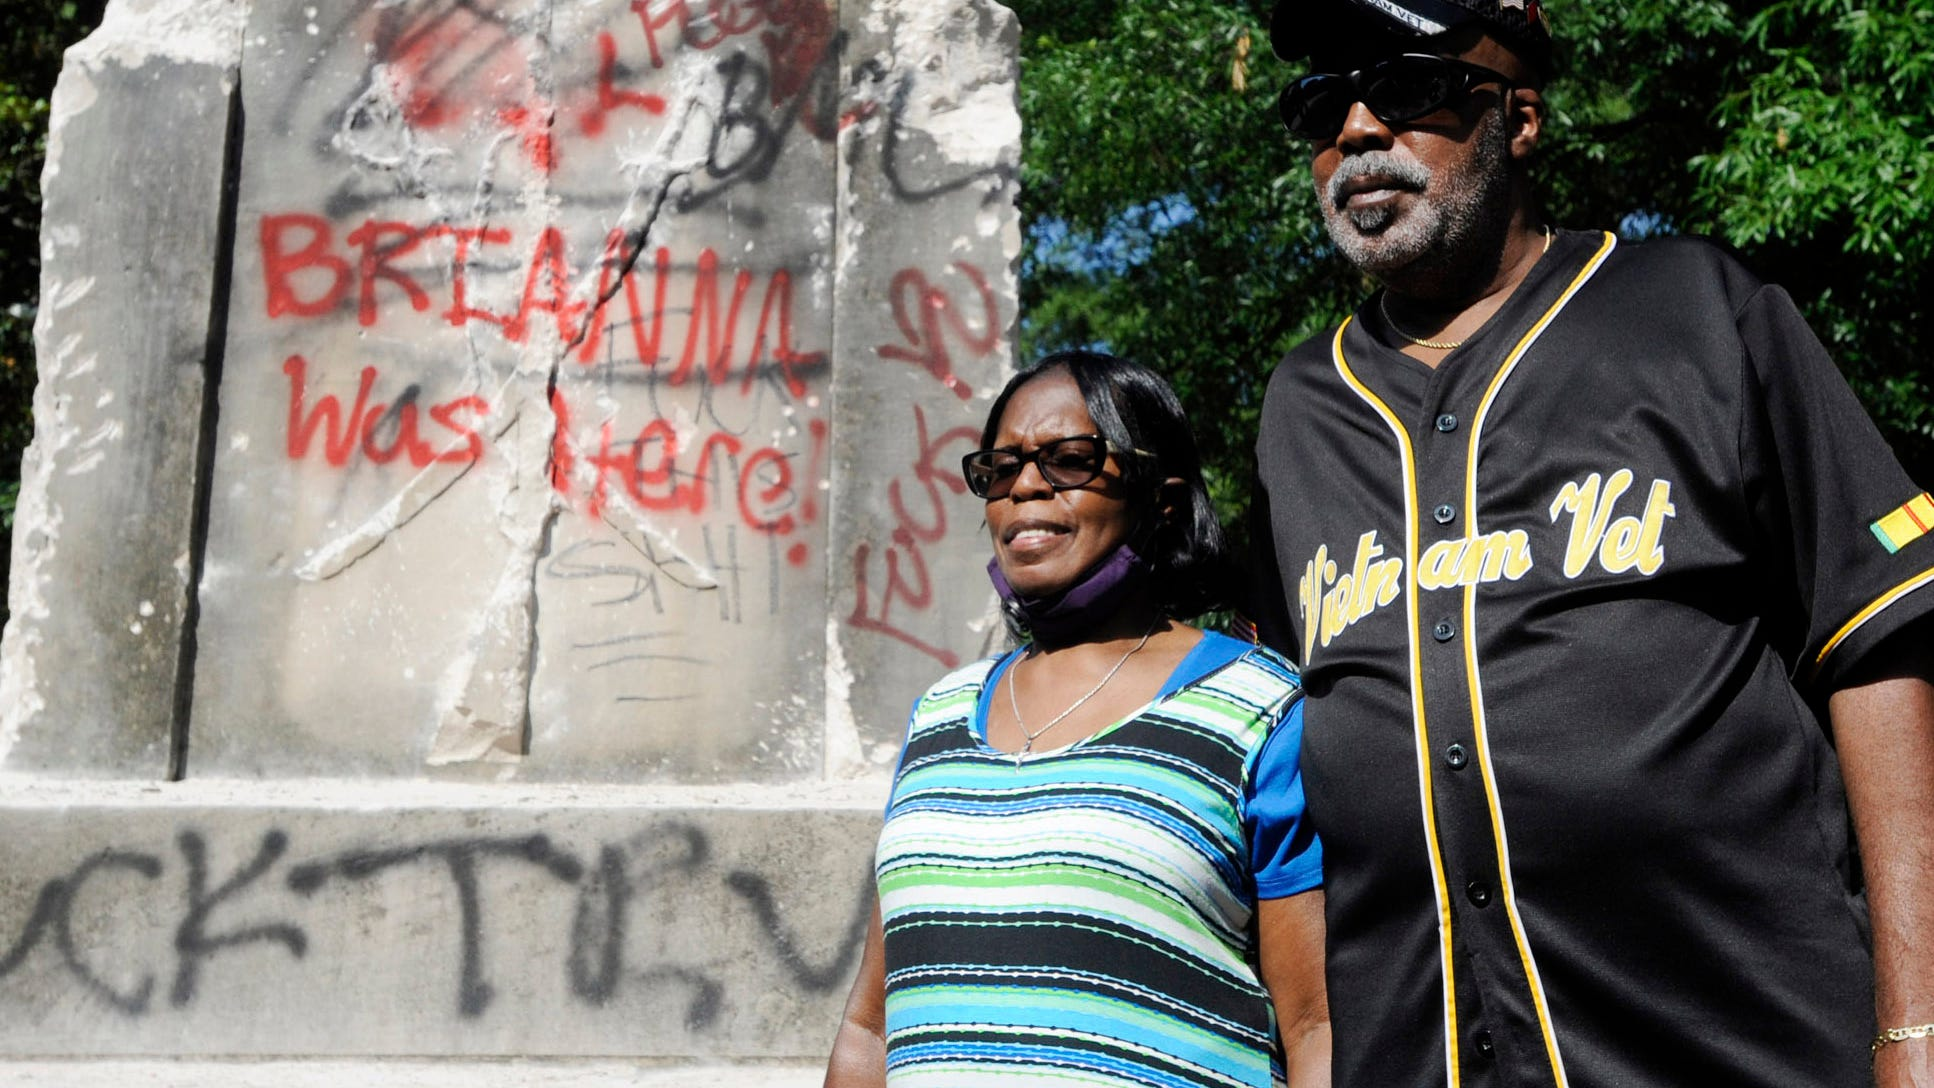 16th Street Baptist Church bombing victim seeking apology, compensation from Alabama